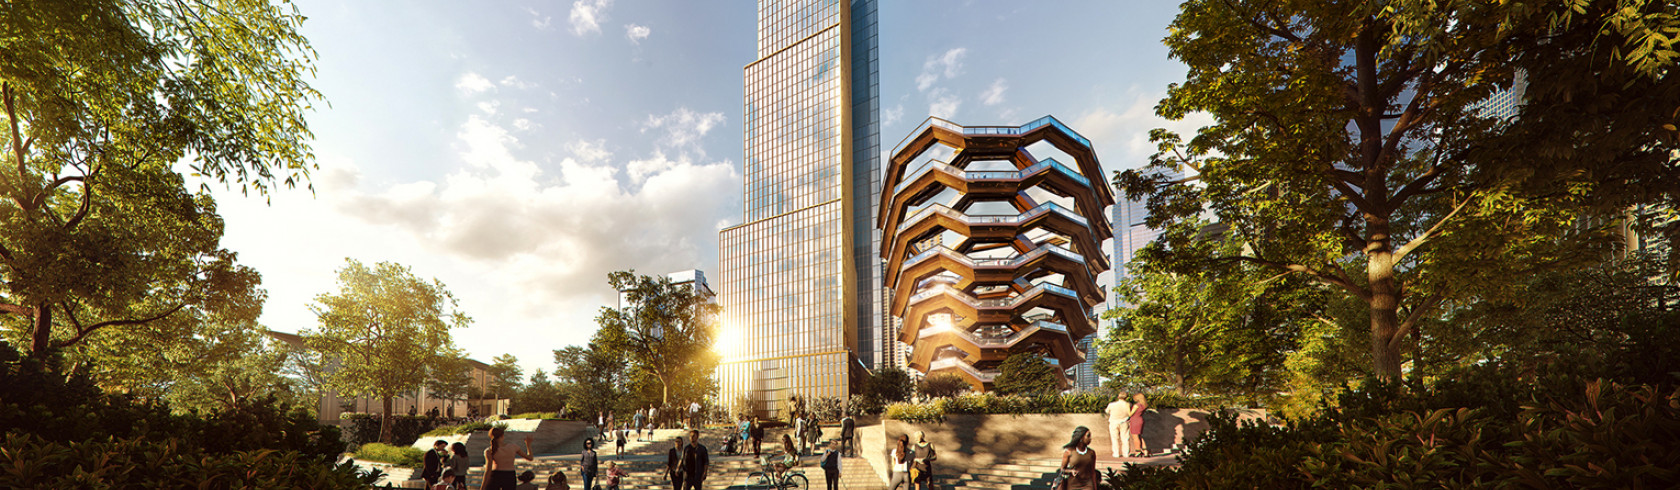 New In The Neighborhood: <br>Hudson Yards